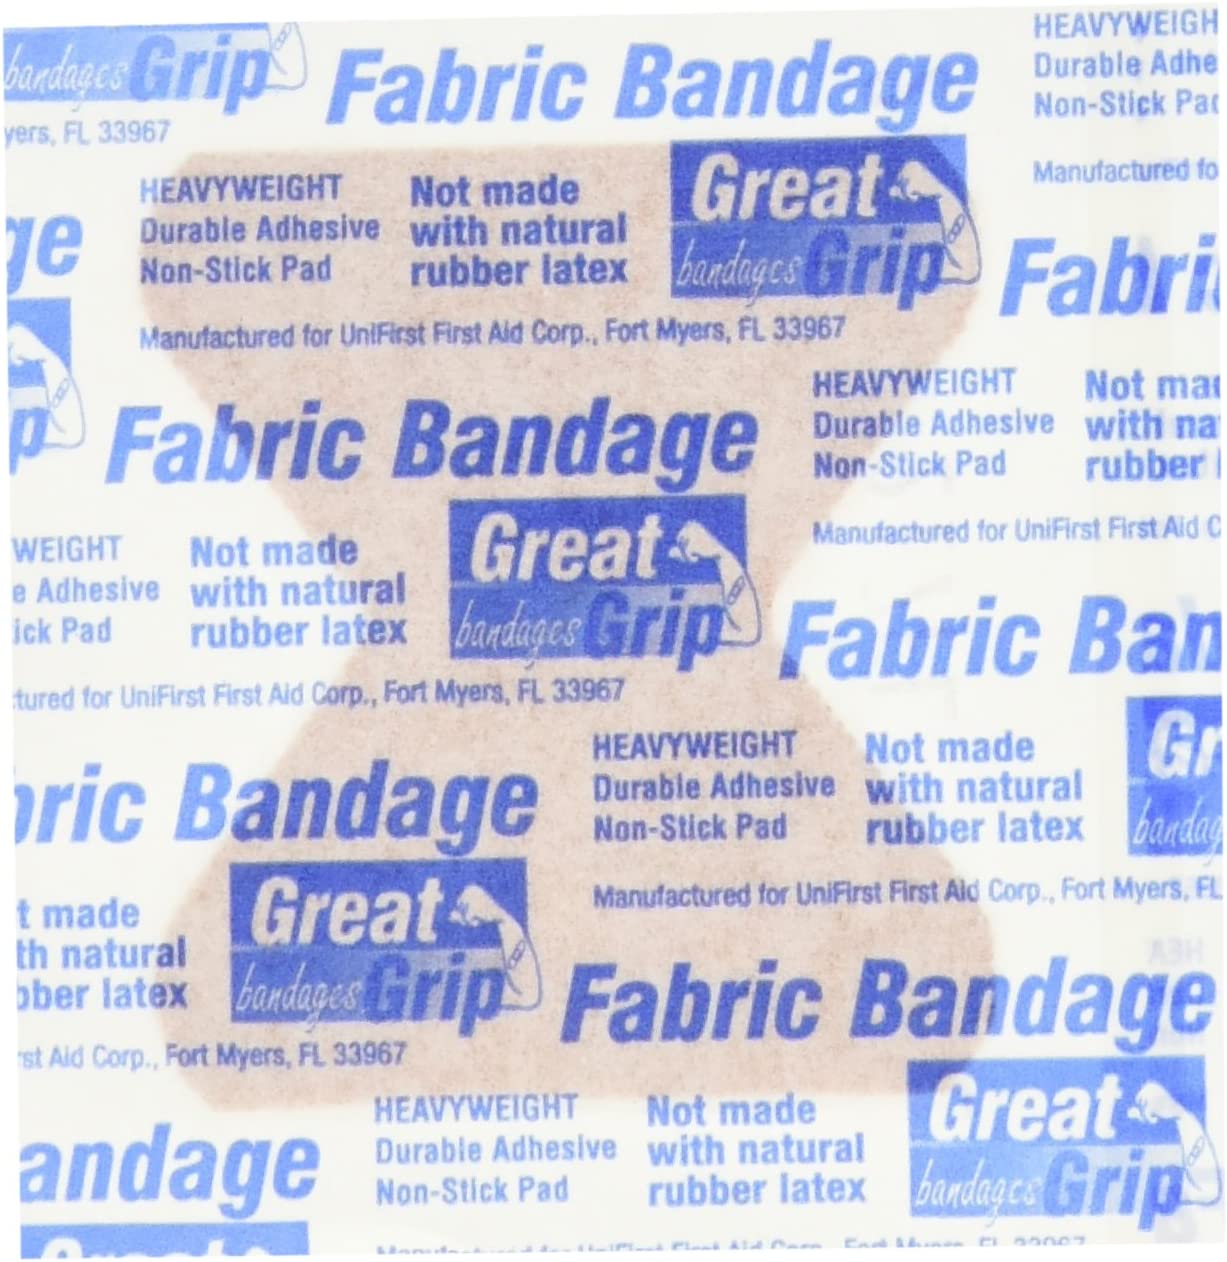 Medique Products 61578 Woven Extra Heavy Weight Latex Free Fingertip Bandages, 40 Per Box 71f0g5pJvgL